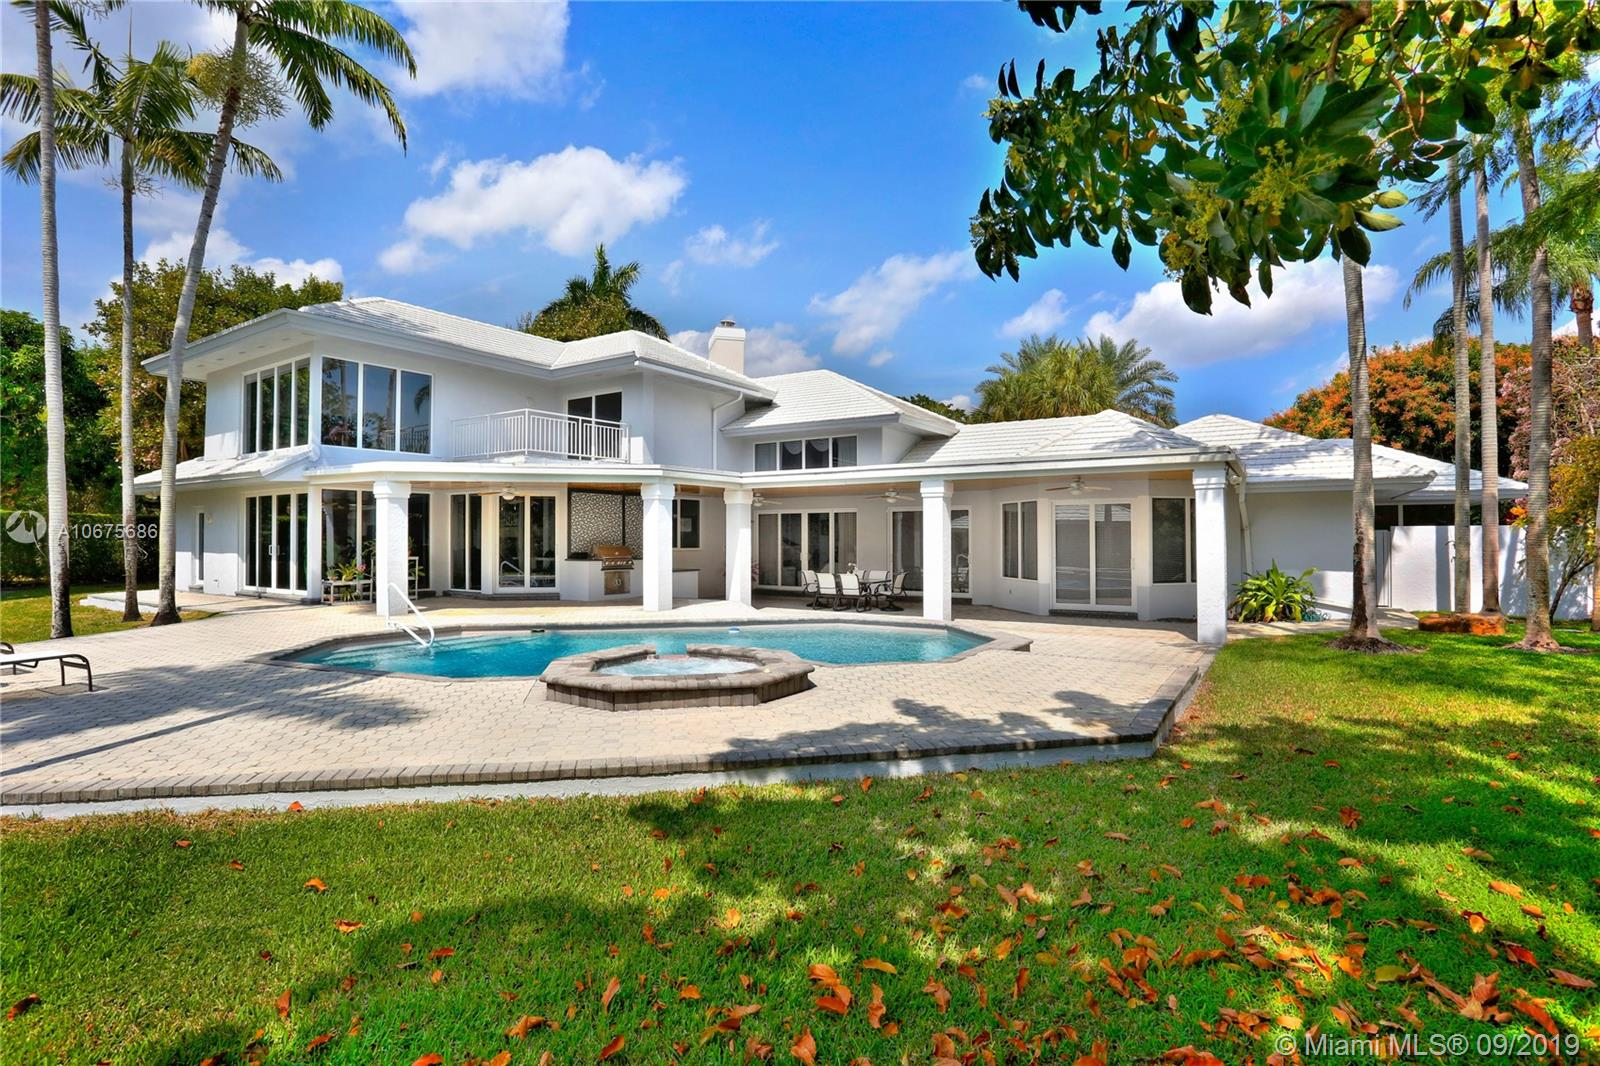 6270 SW 102nd St, Kendall, Florida